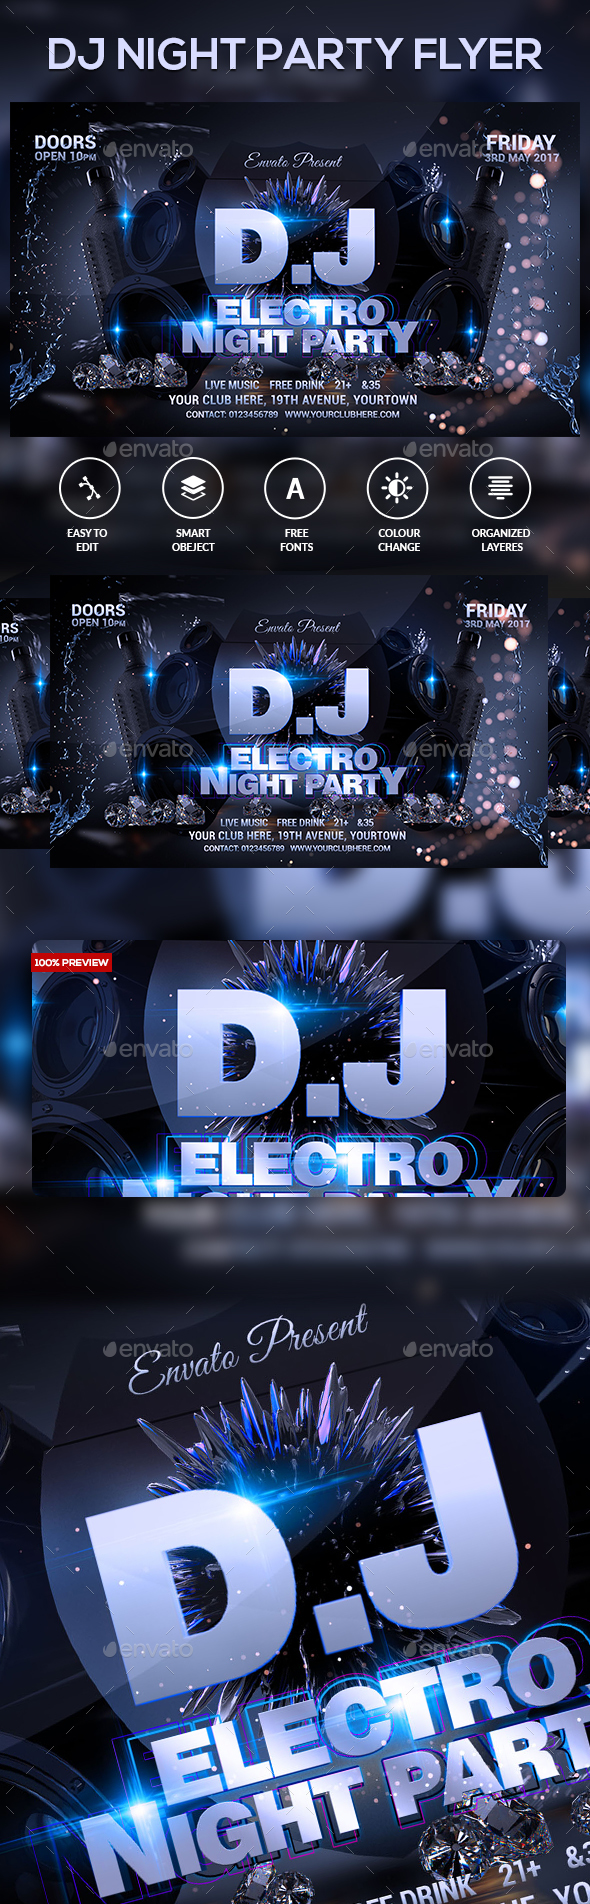 DJ Electro Festival Flyer - Clubs & Parties Events